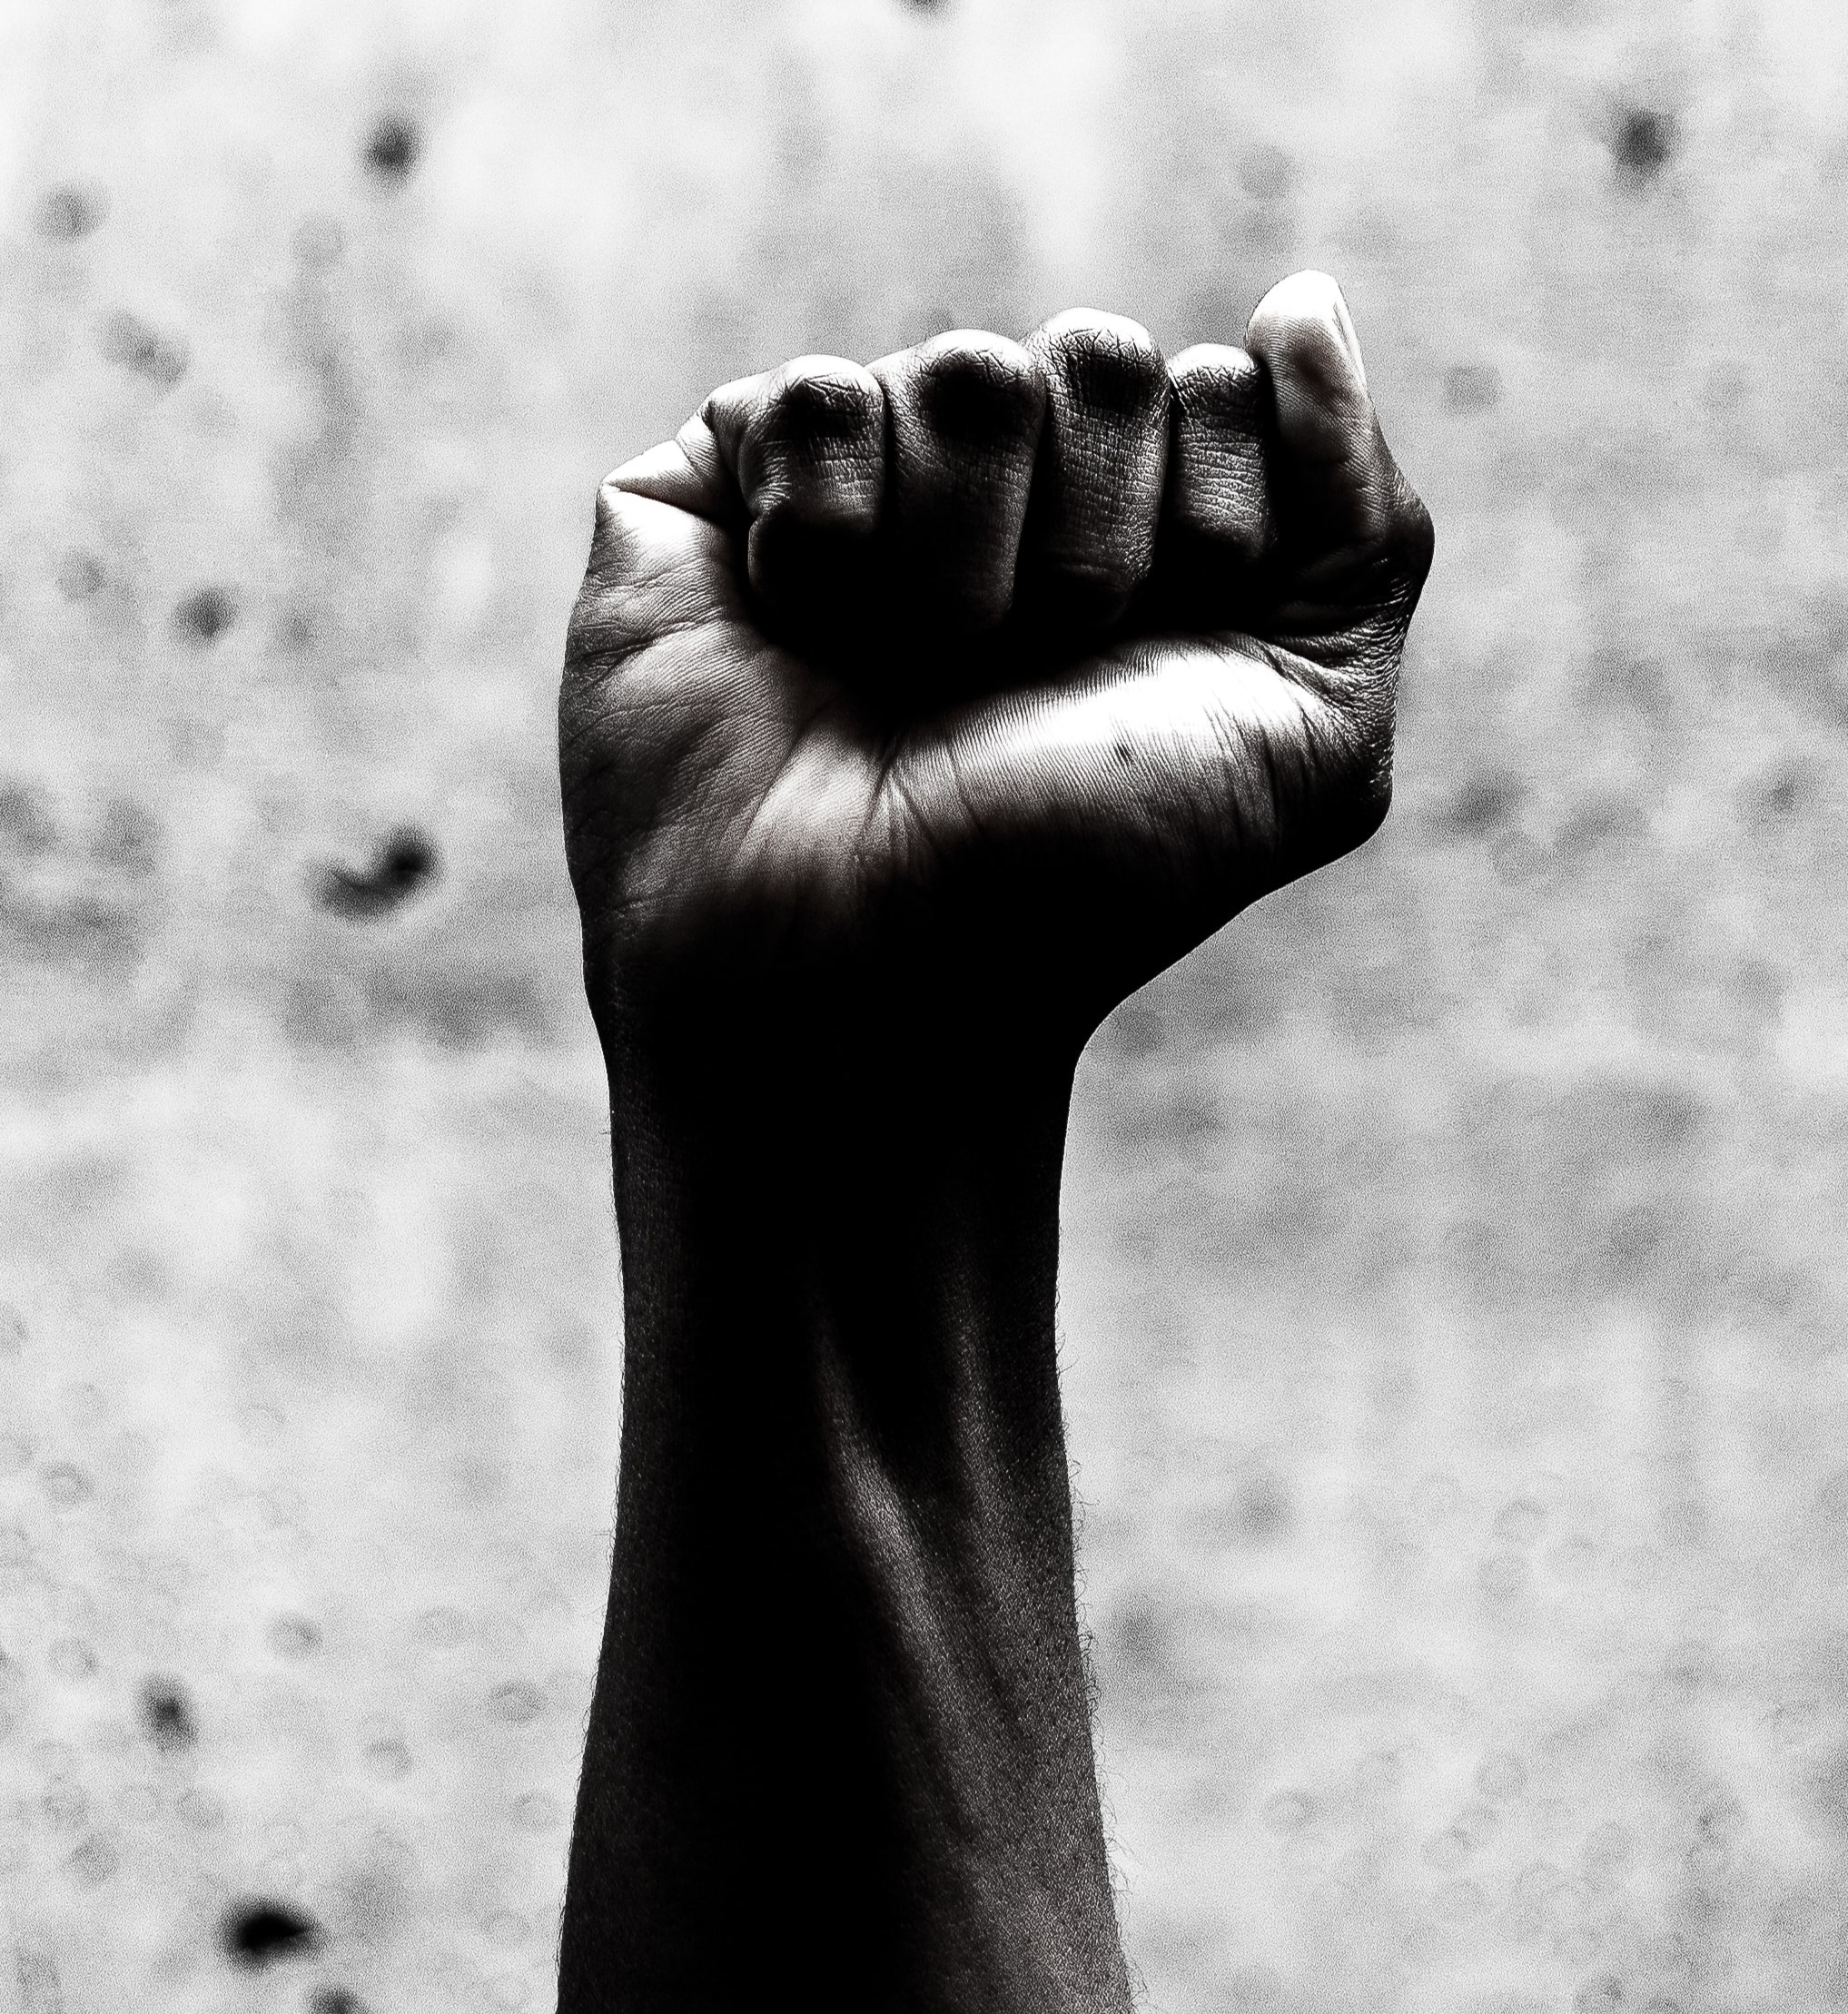 A dark-skinned person's fist is clenched and thrust into the air, in the manner of Black Power.